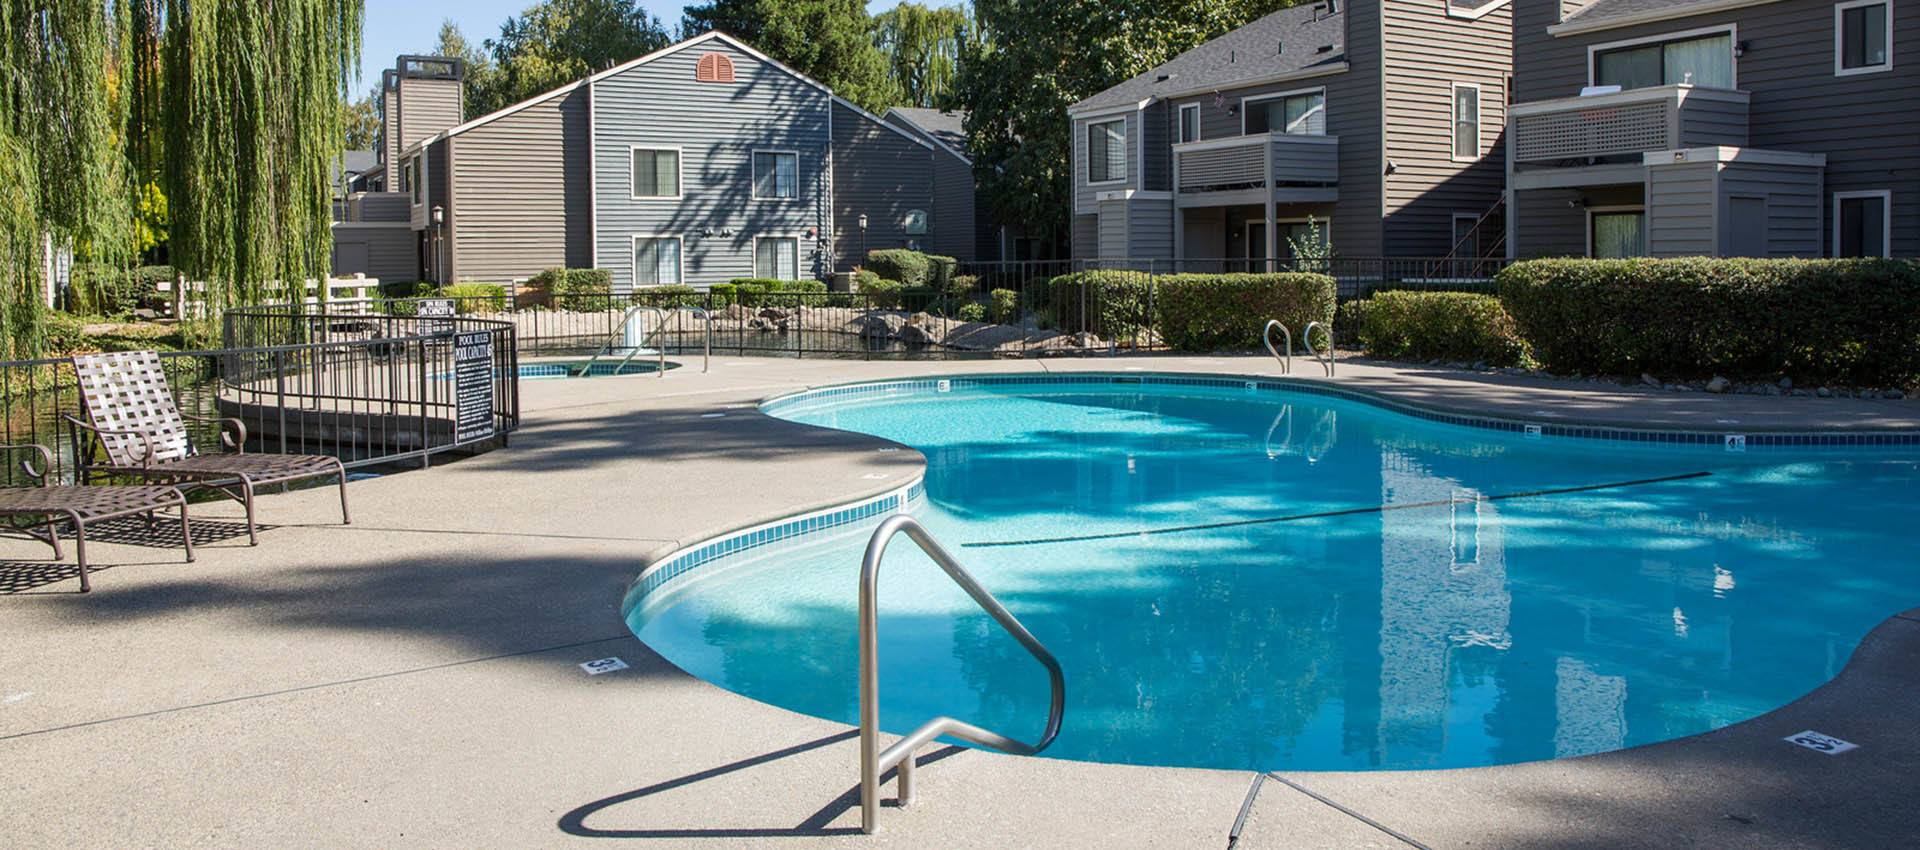 Enjoy Our Sparkling Swiming Pool at Hidden Lake Condominium Rentals in Sacramento, CA